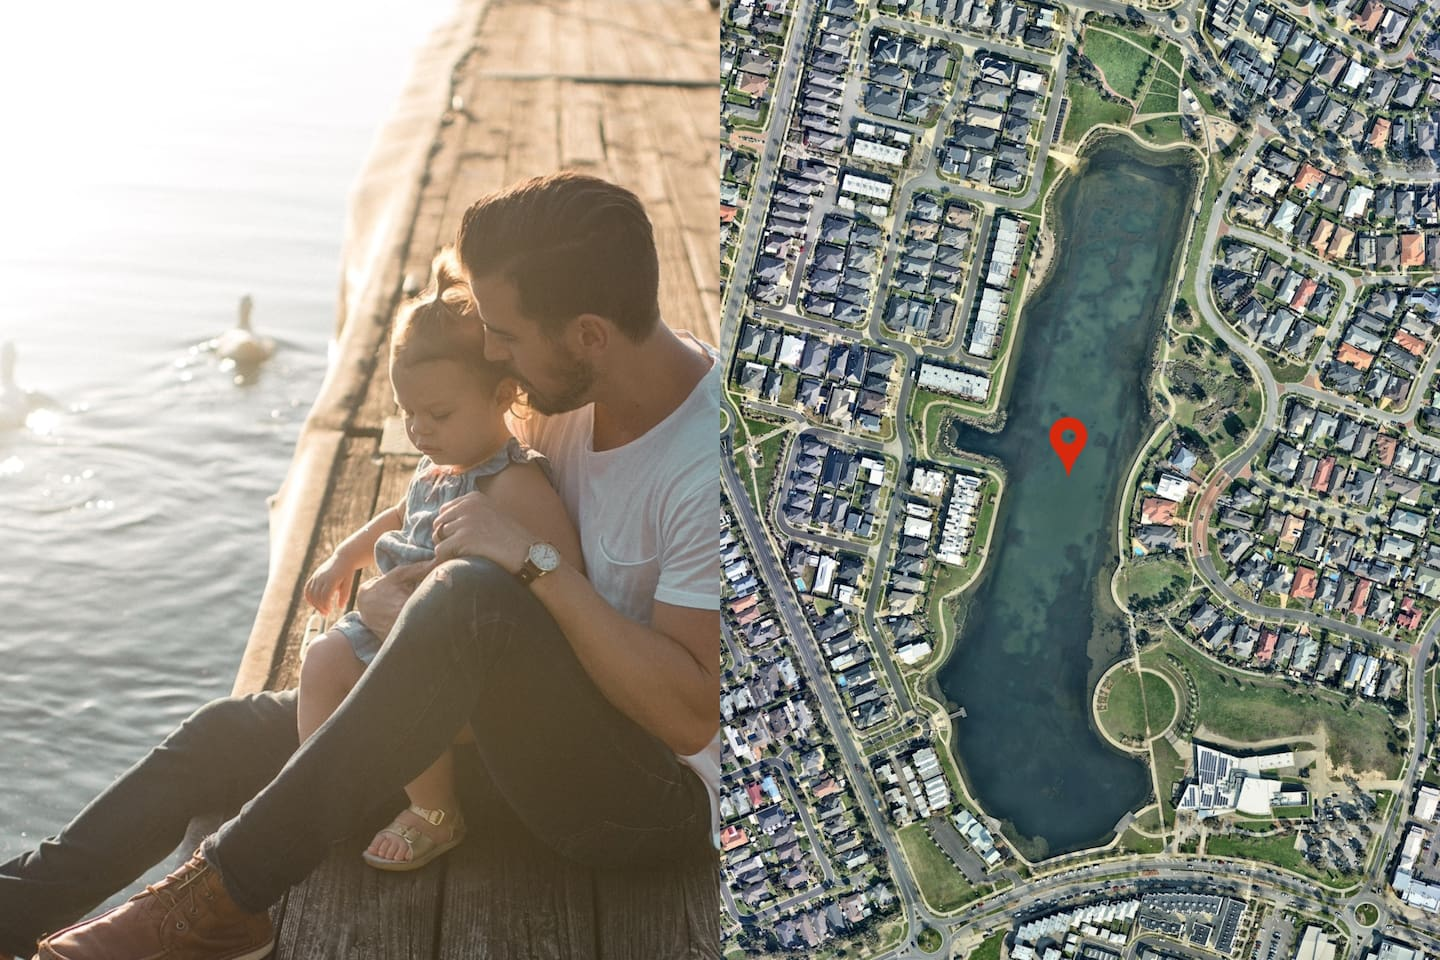 5 minutes by car: Lakeside Recreation Reserve. Great for a afternoon out with your family